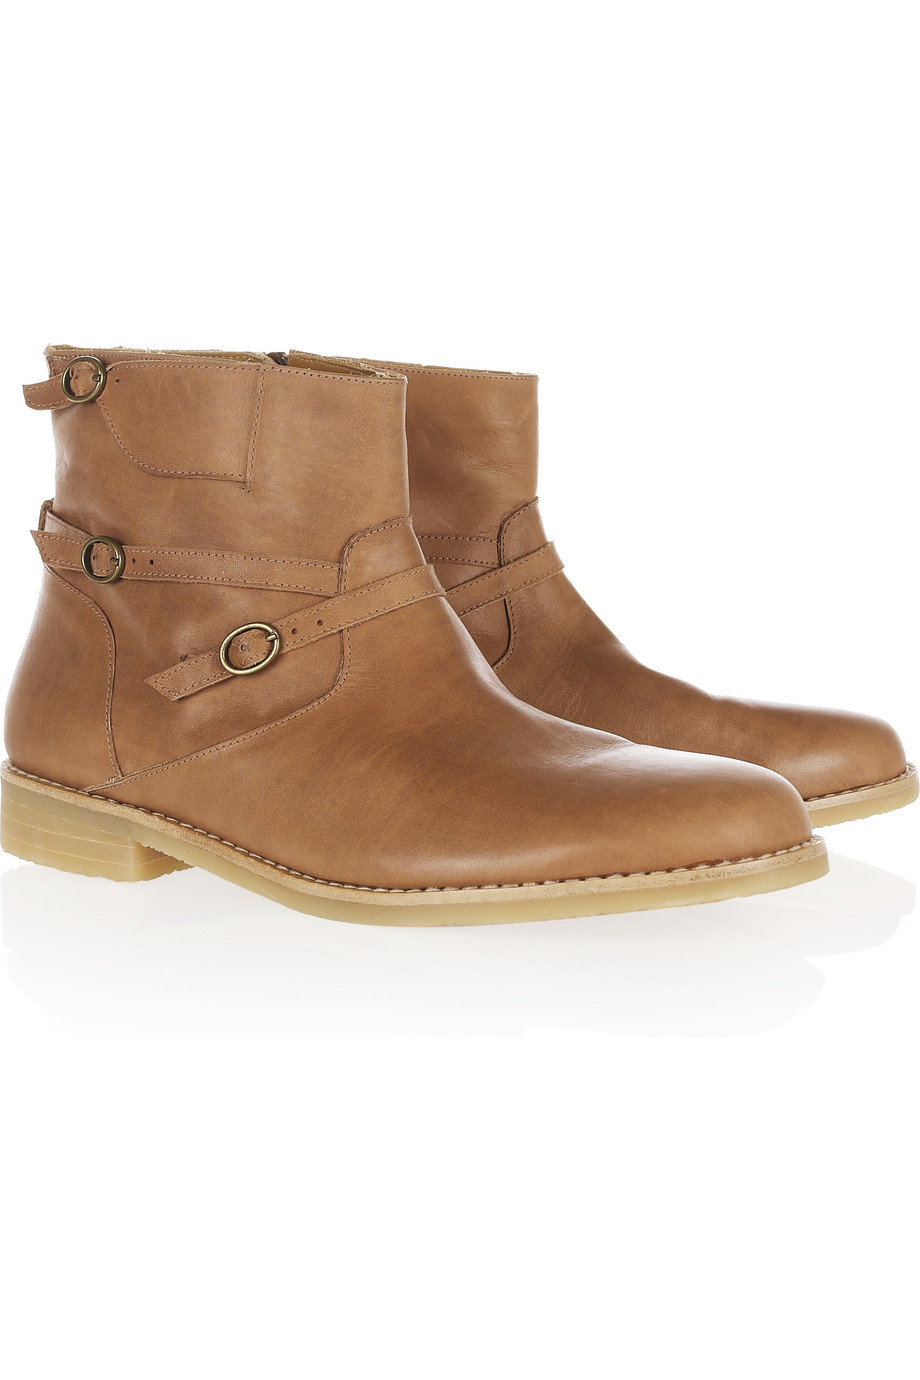 Vanessa bruno athé Buckled Flat Leather Ankle Boots in Brown | Lyst